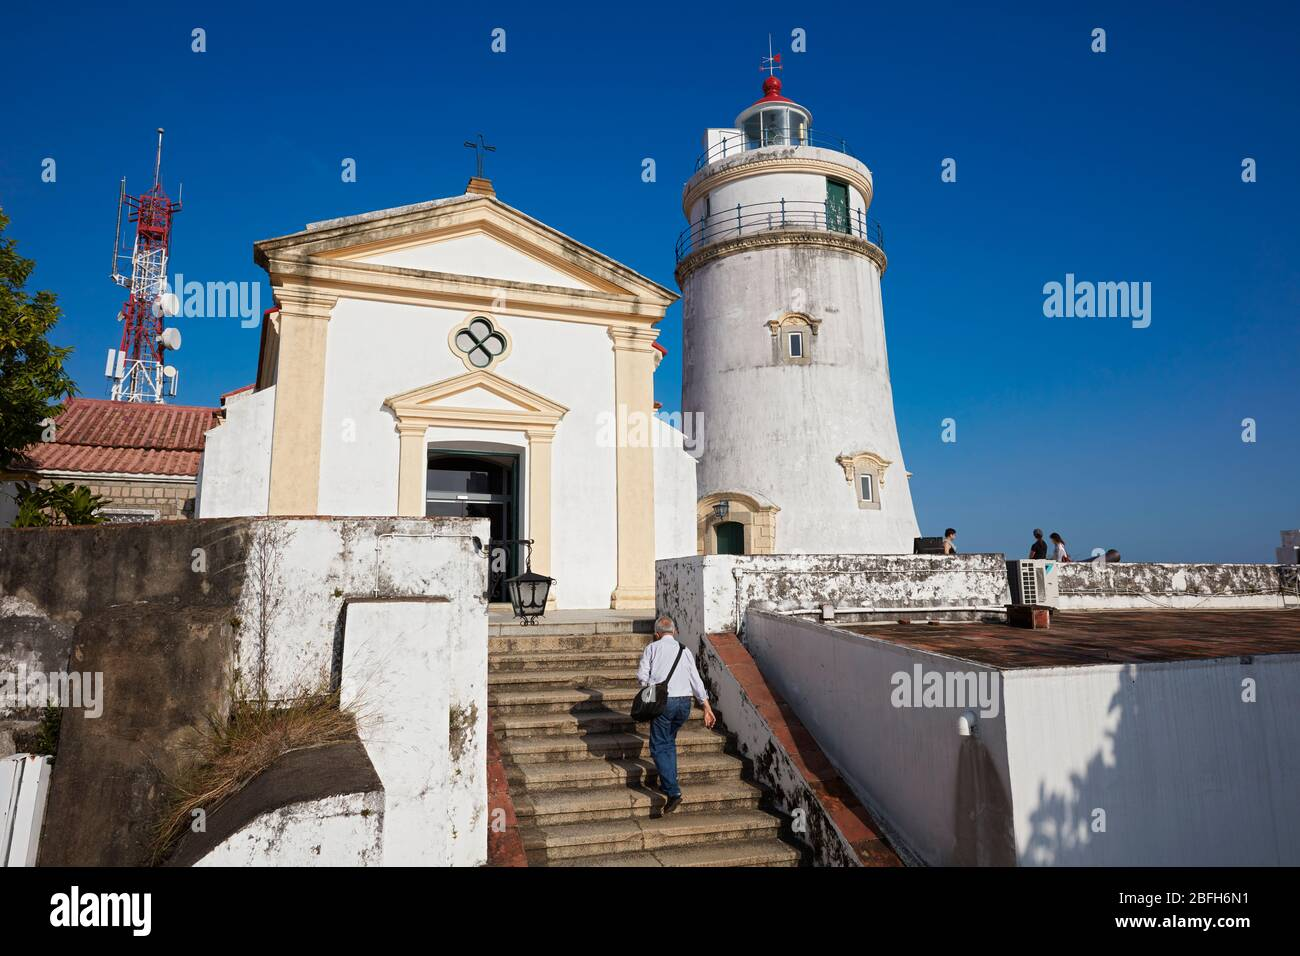 Man walking up the stair at the Guia Fortress, a 17th-century colonial military fort, chapel and lighthouse complex in Macau, China. Stock Photo